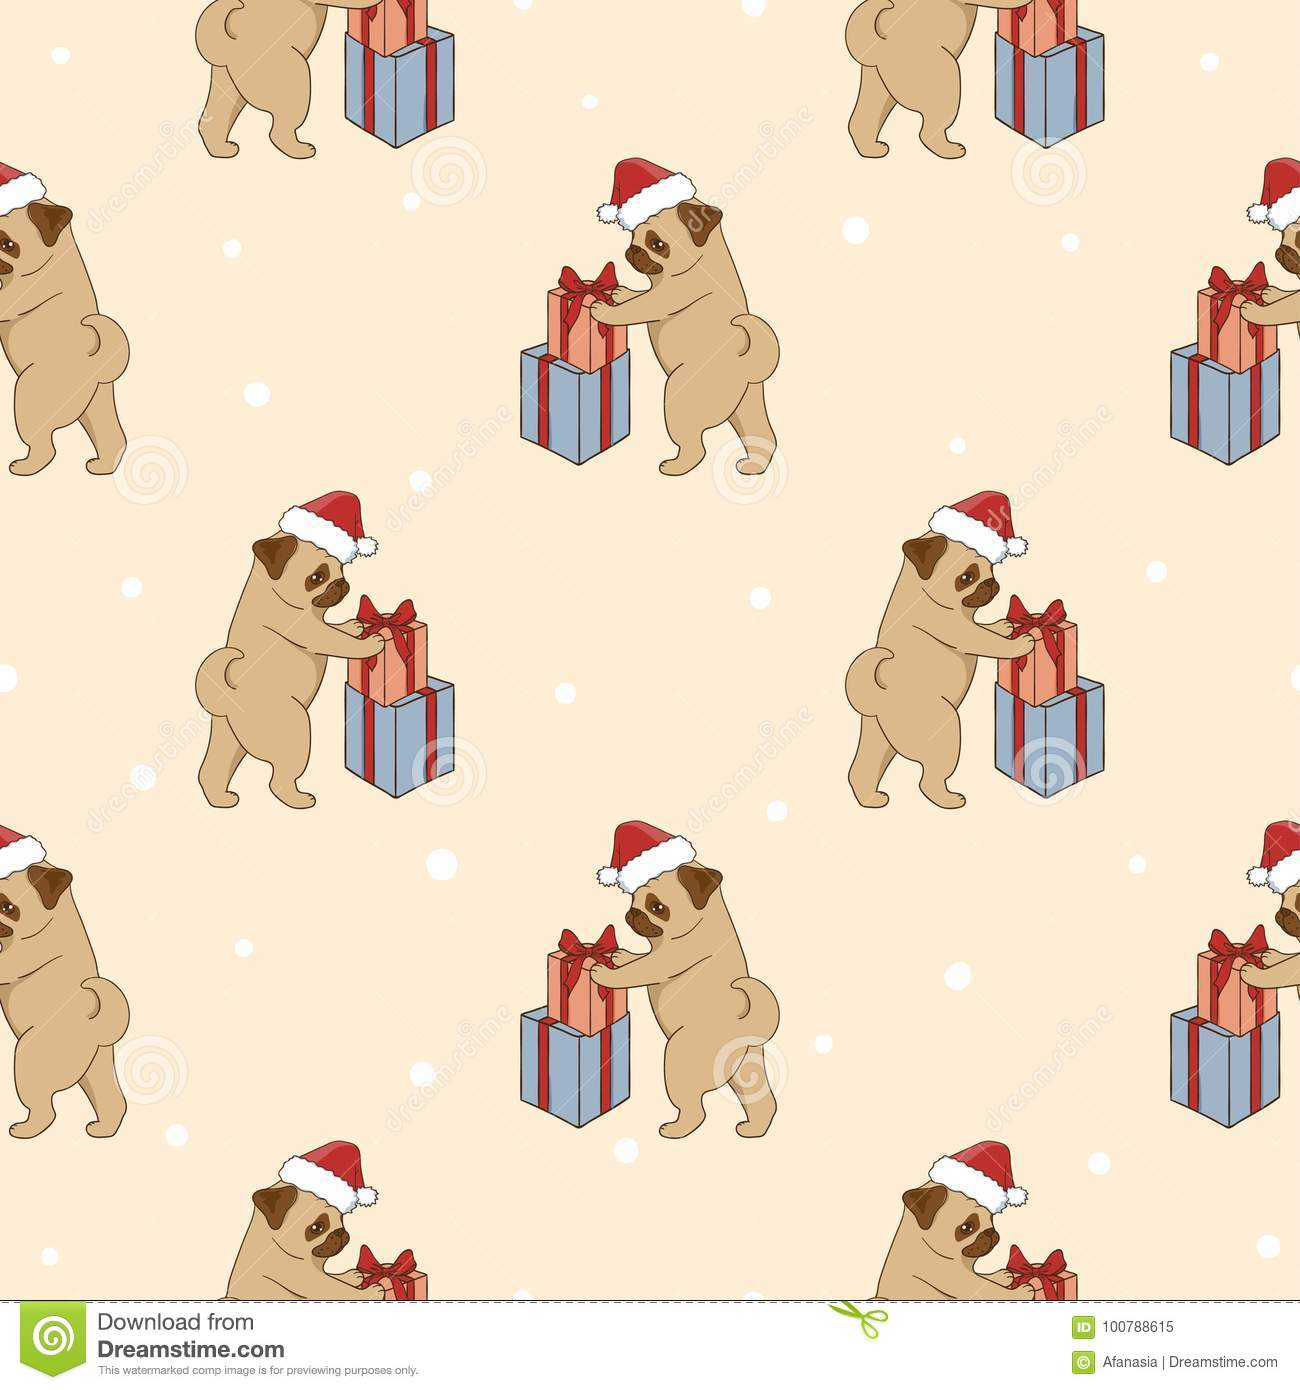 Christmas pattern with cute pugs and gifts.